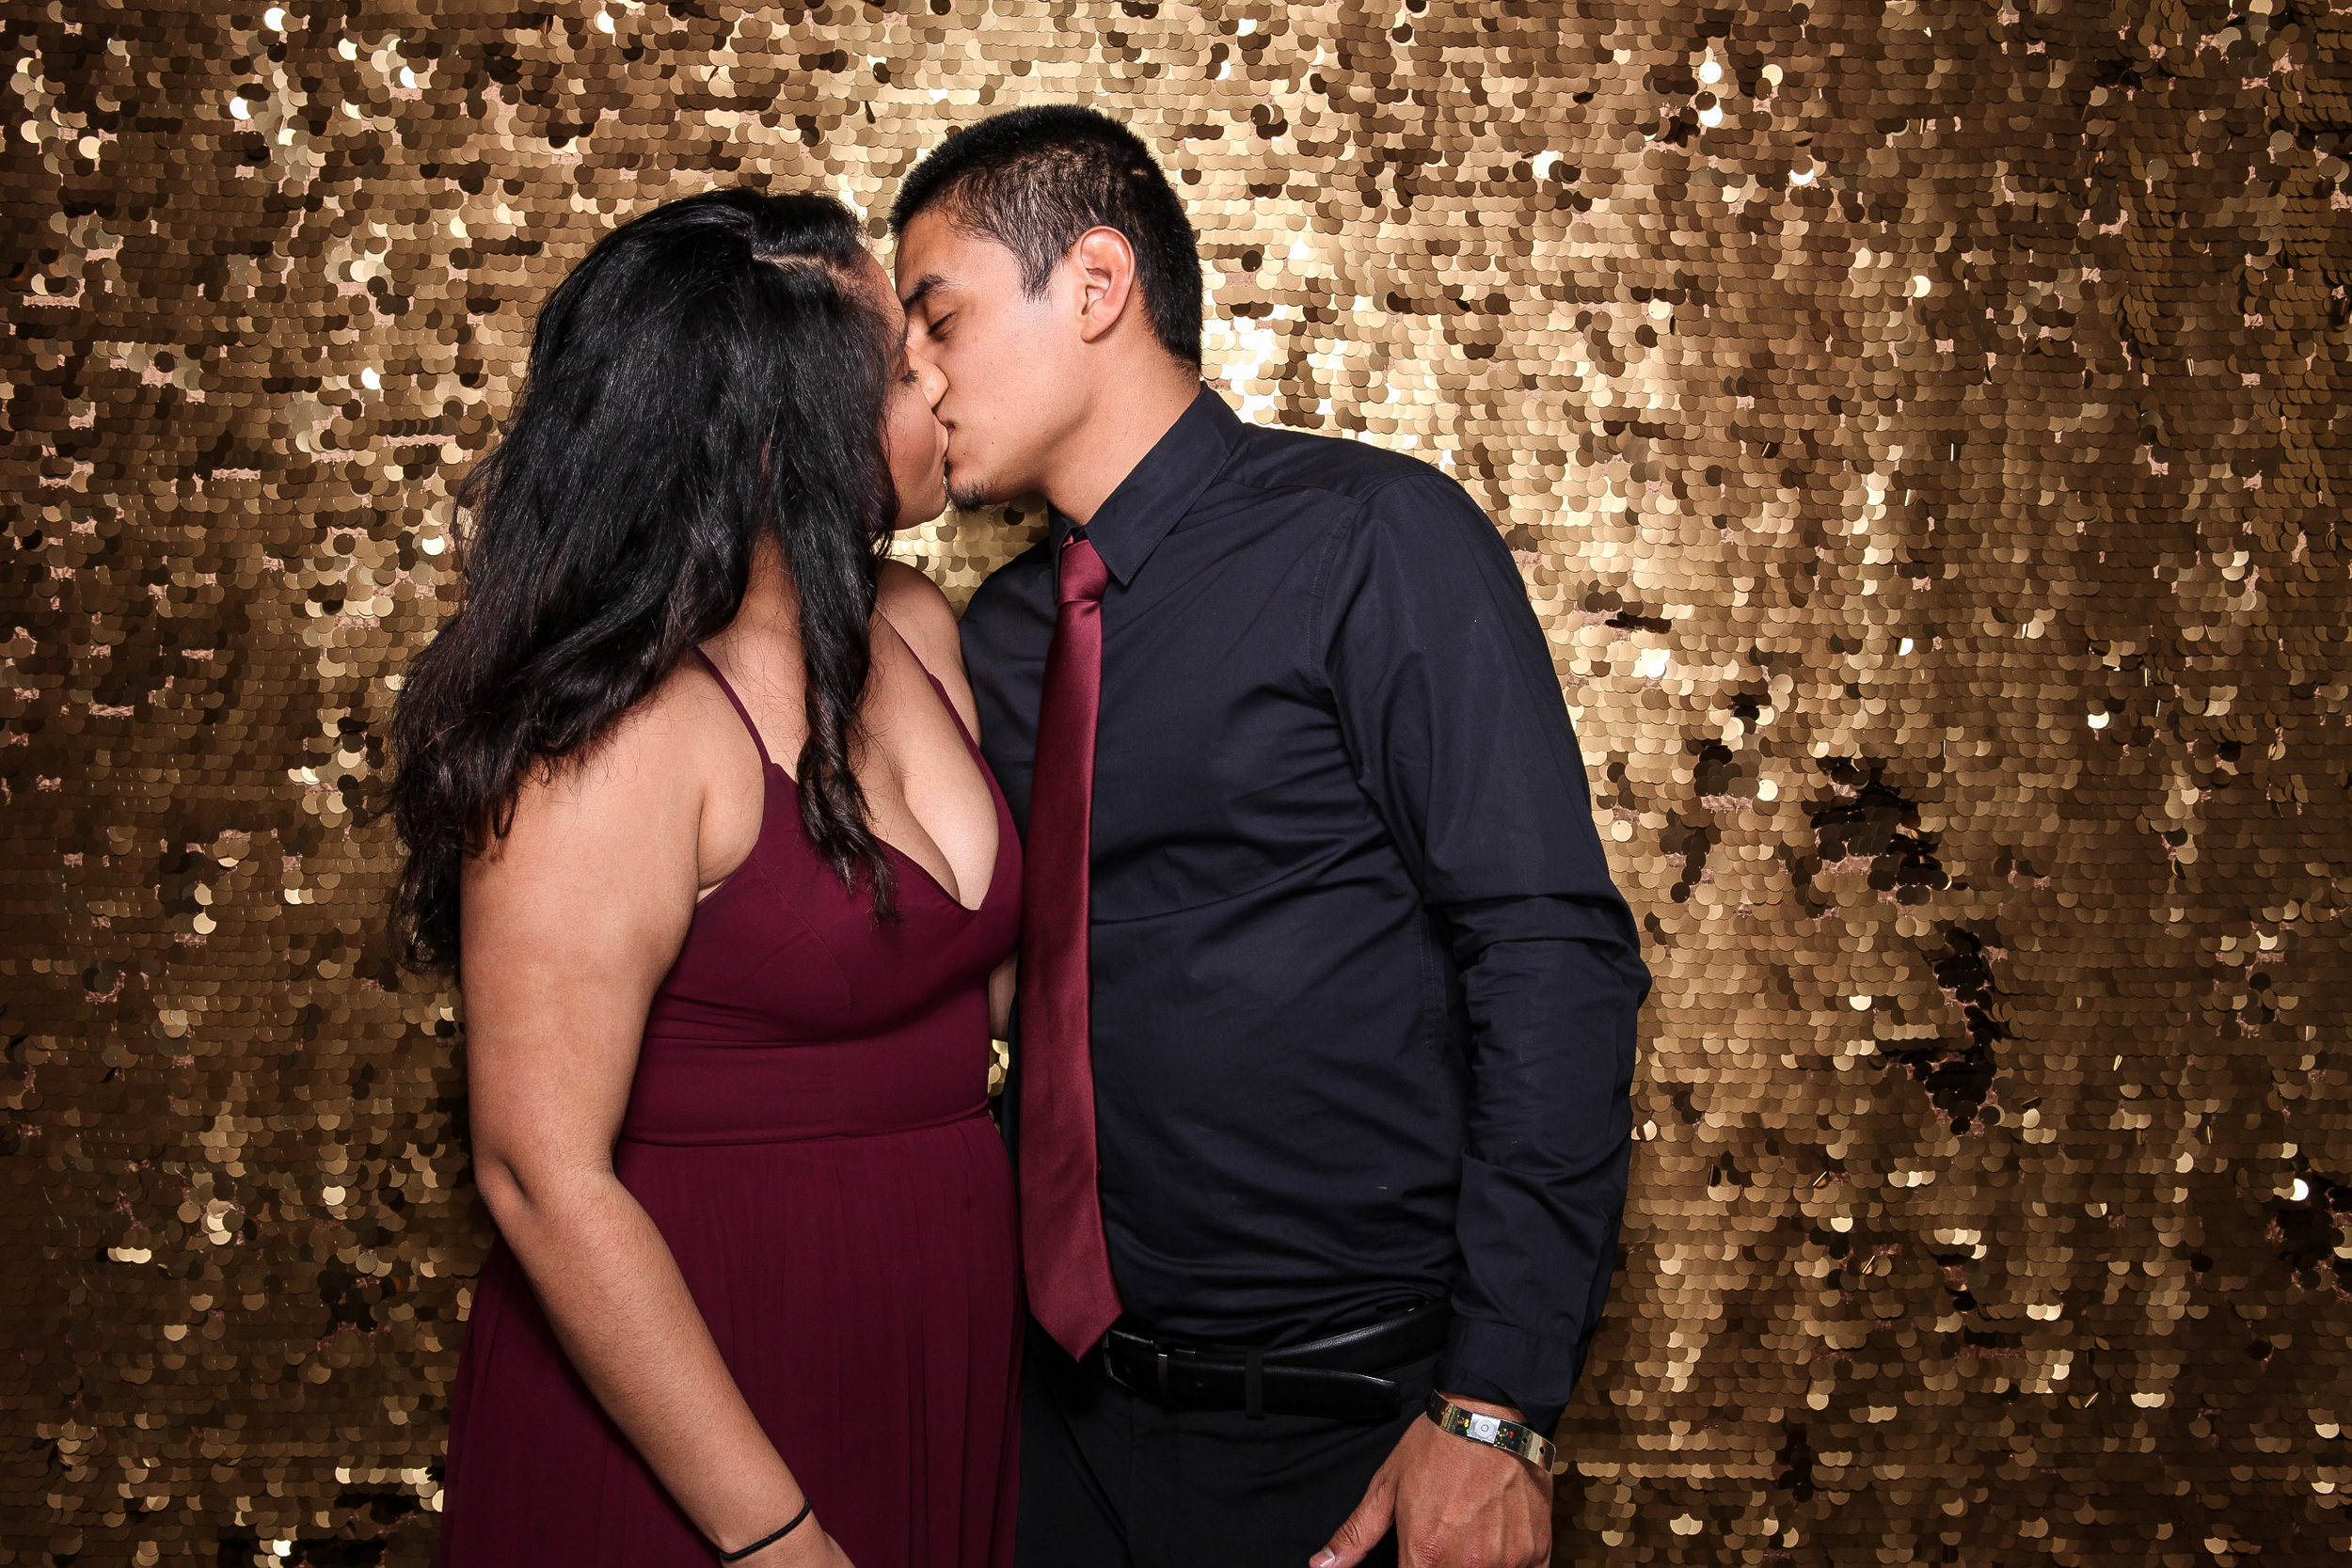 20190503_Adelphi_Senior_Formal-328.jpg